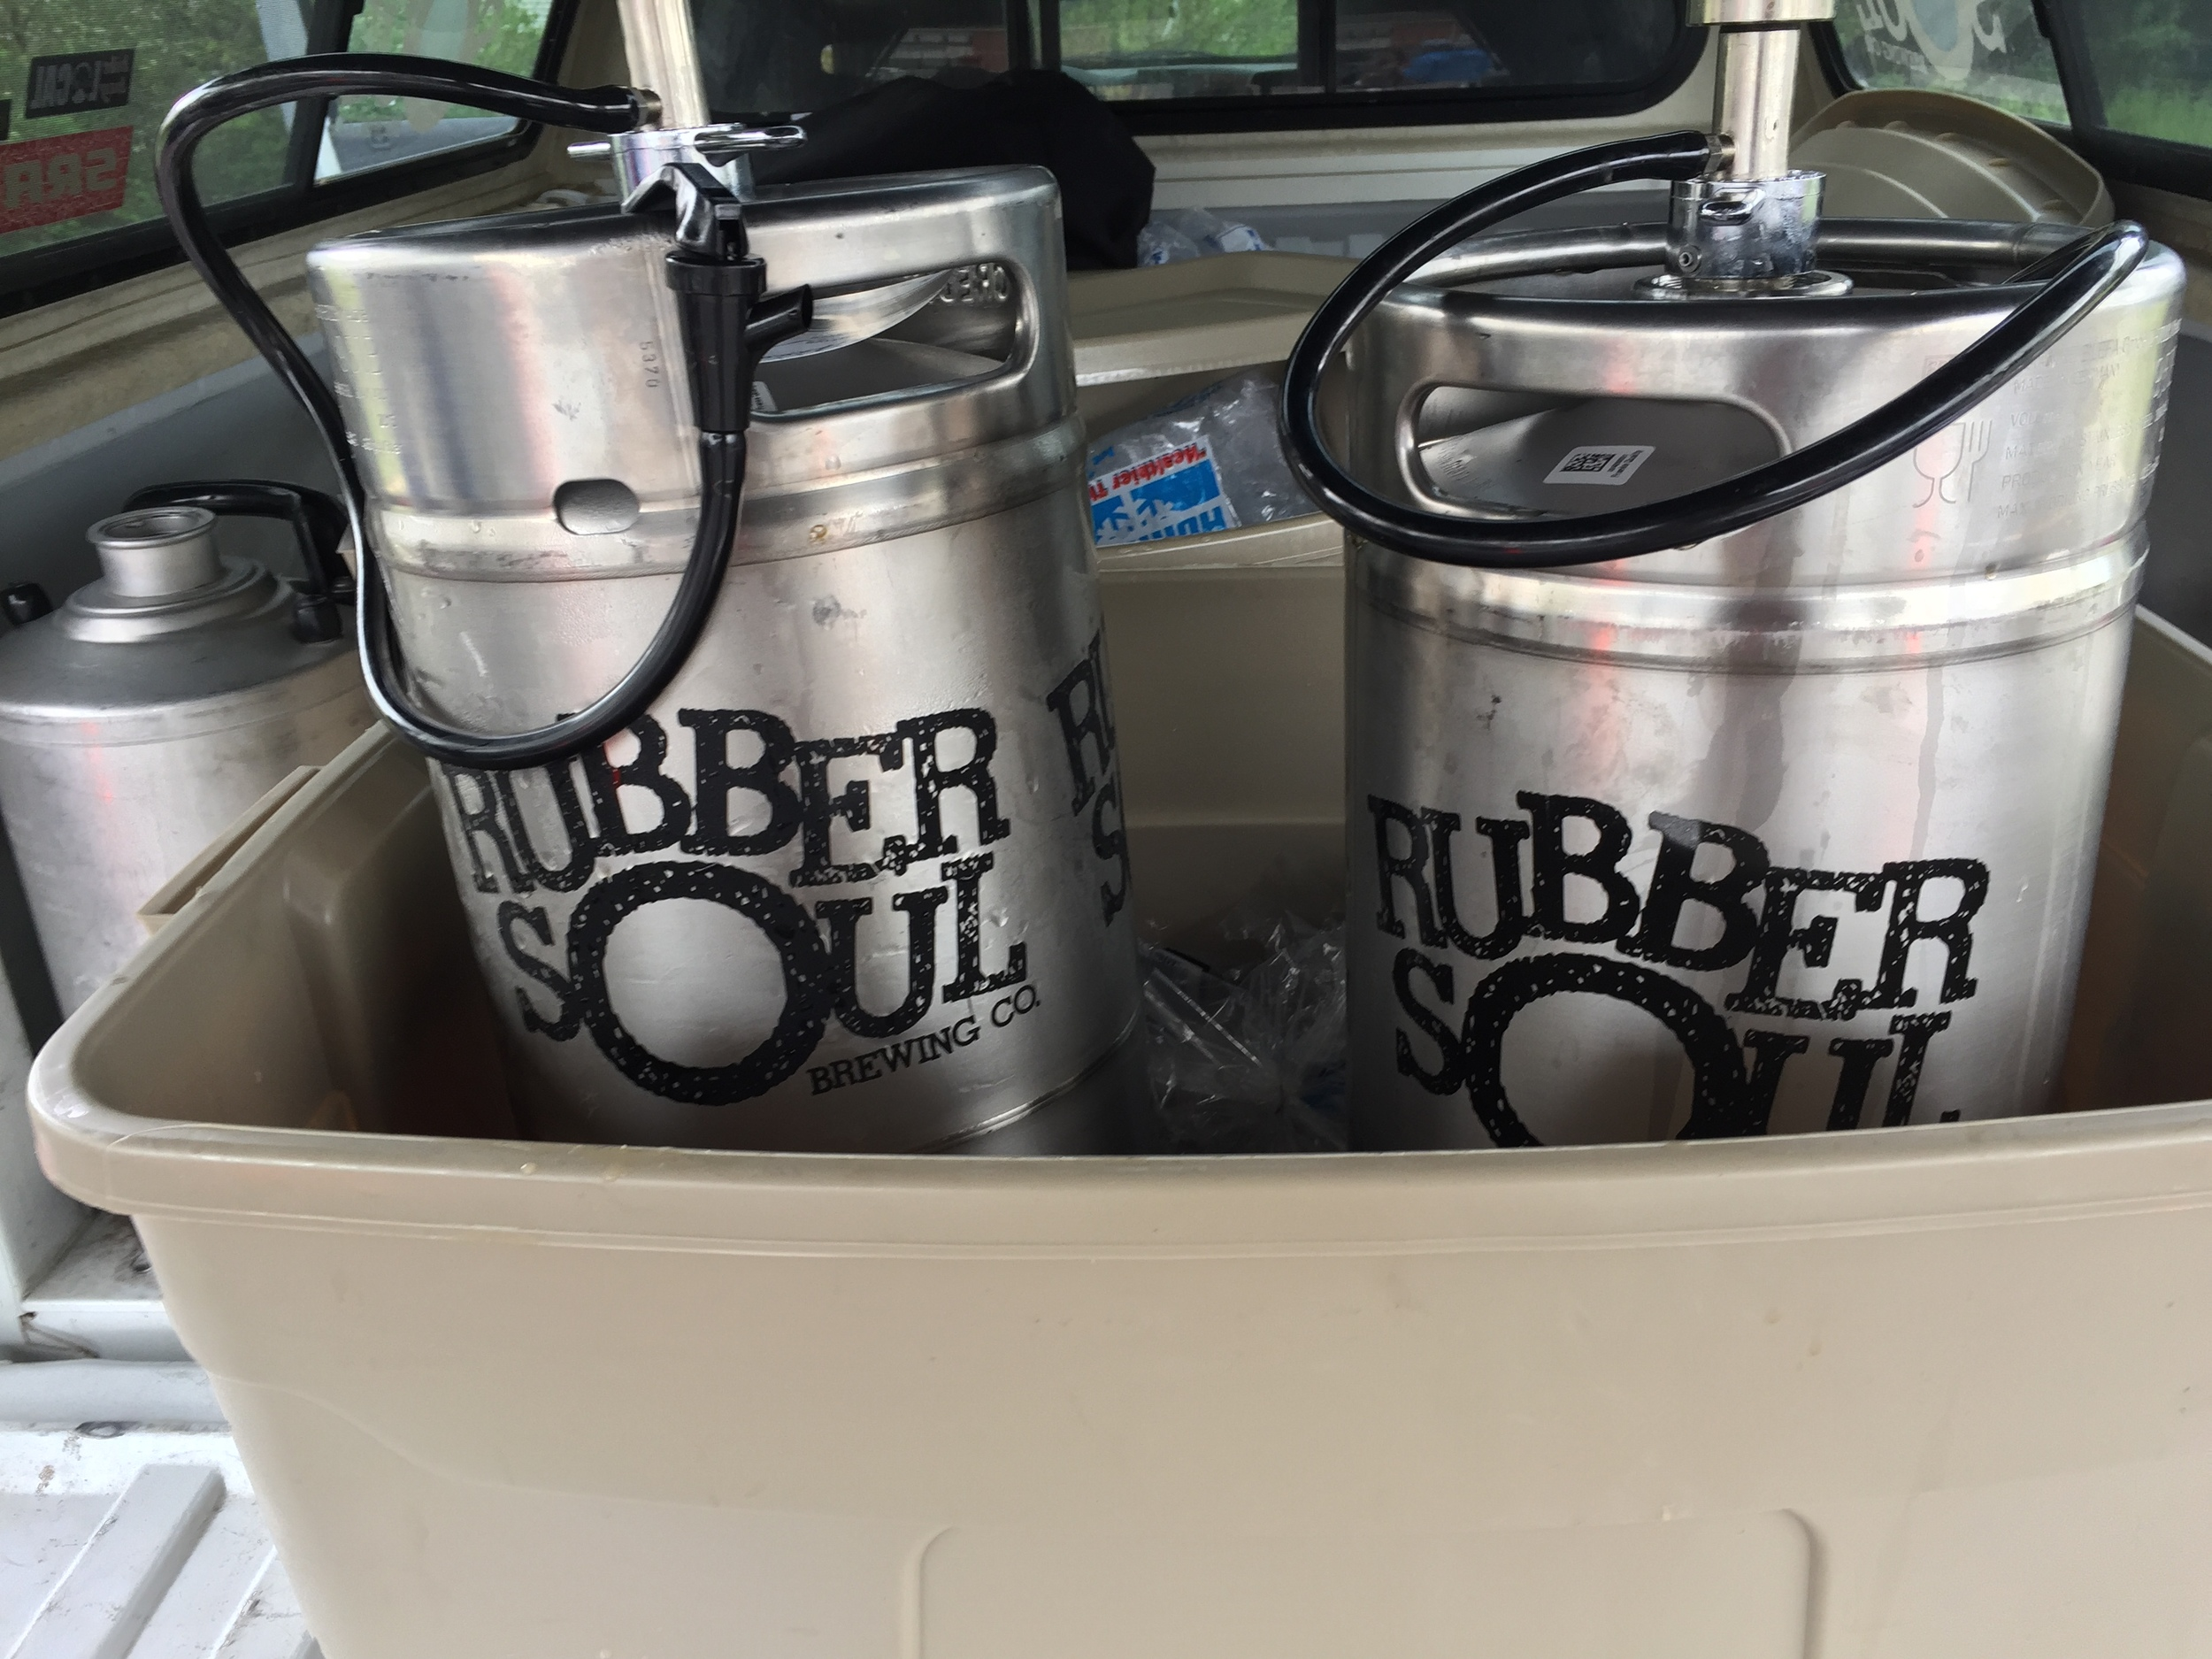 Rubber Soul Brewing Company was the provider of some excellent post-ride rehydration.